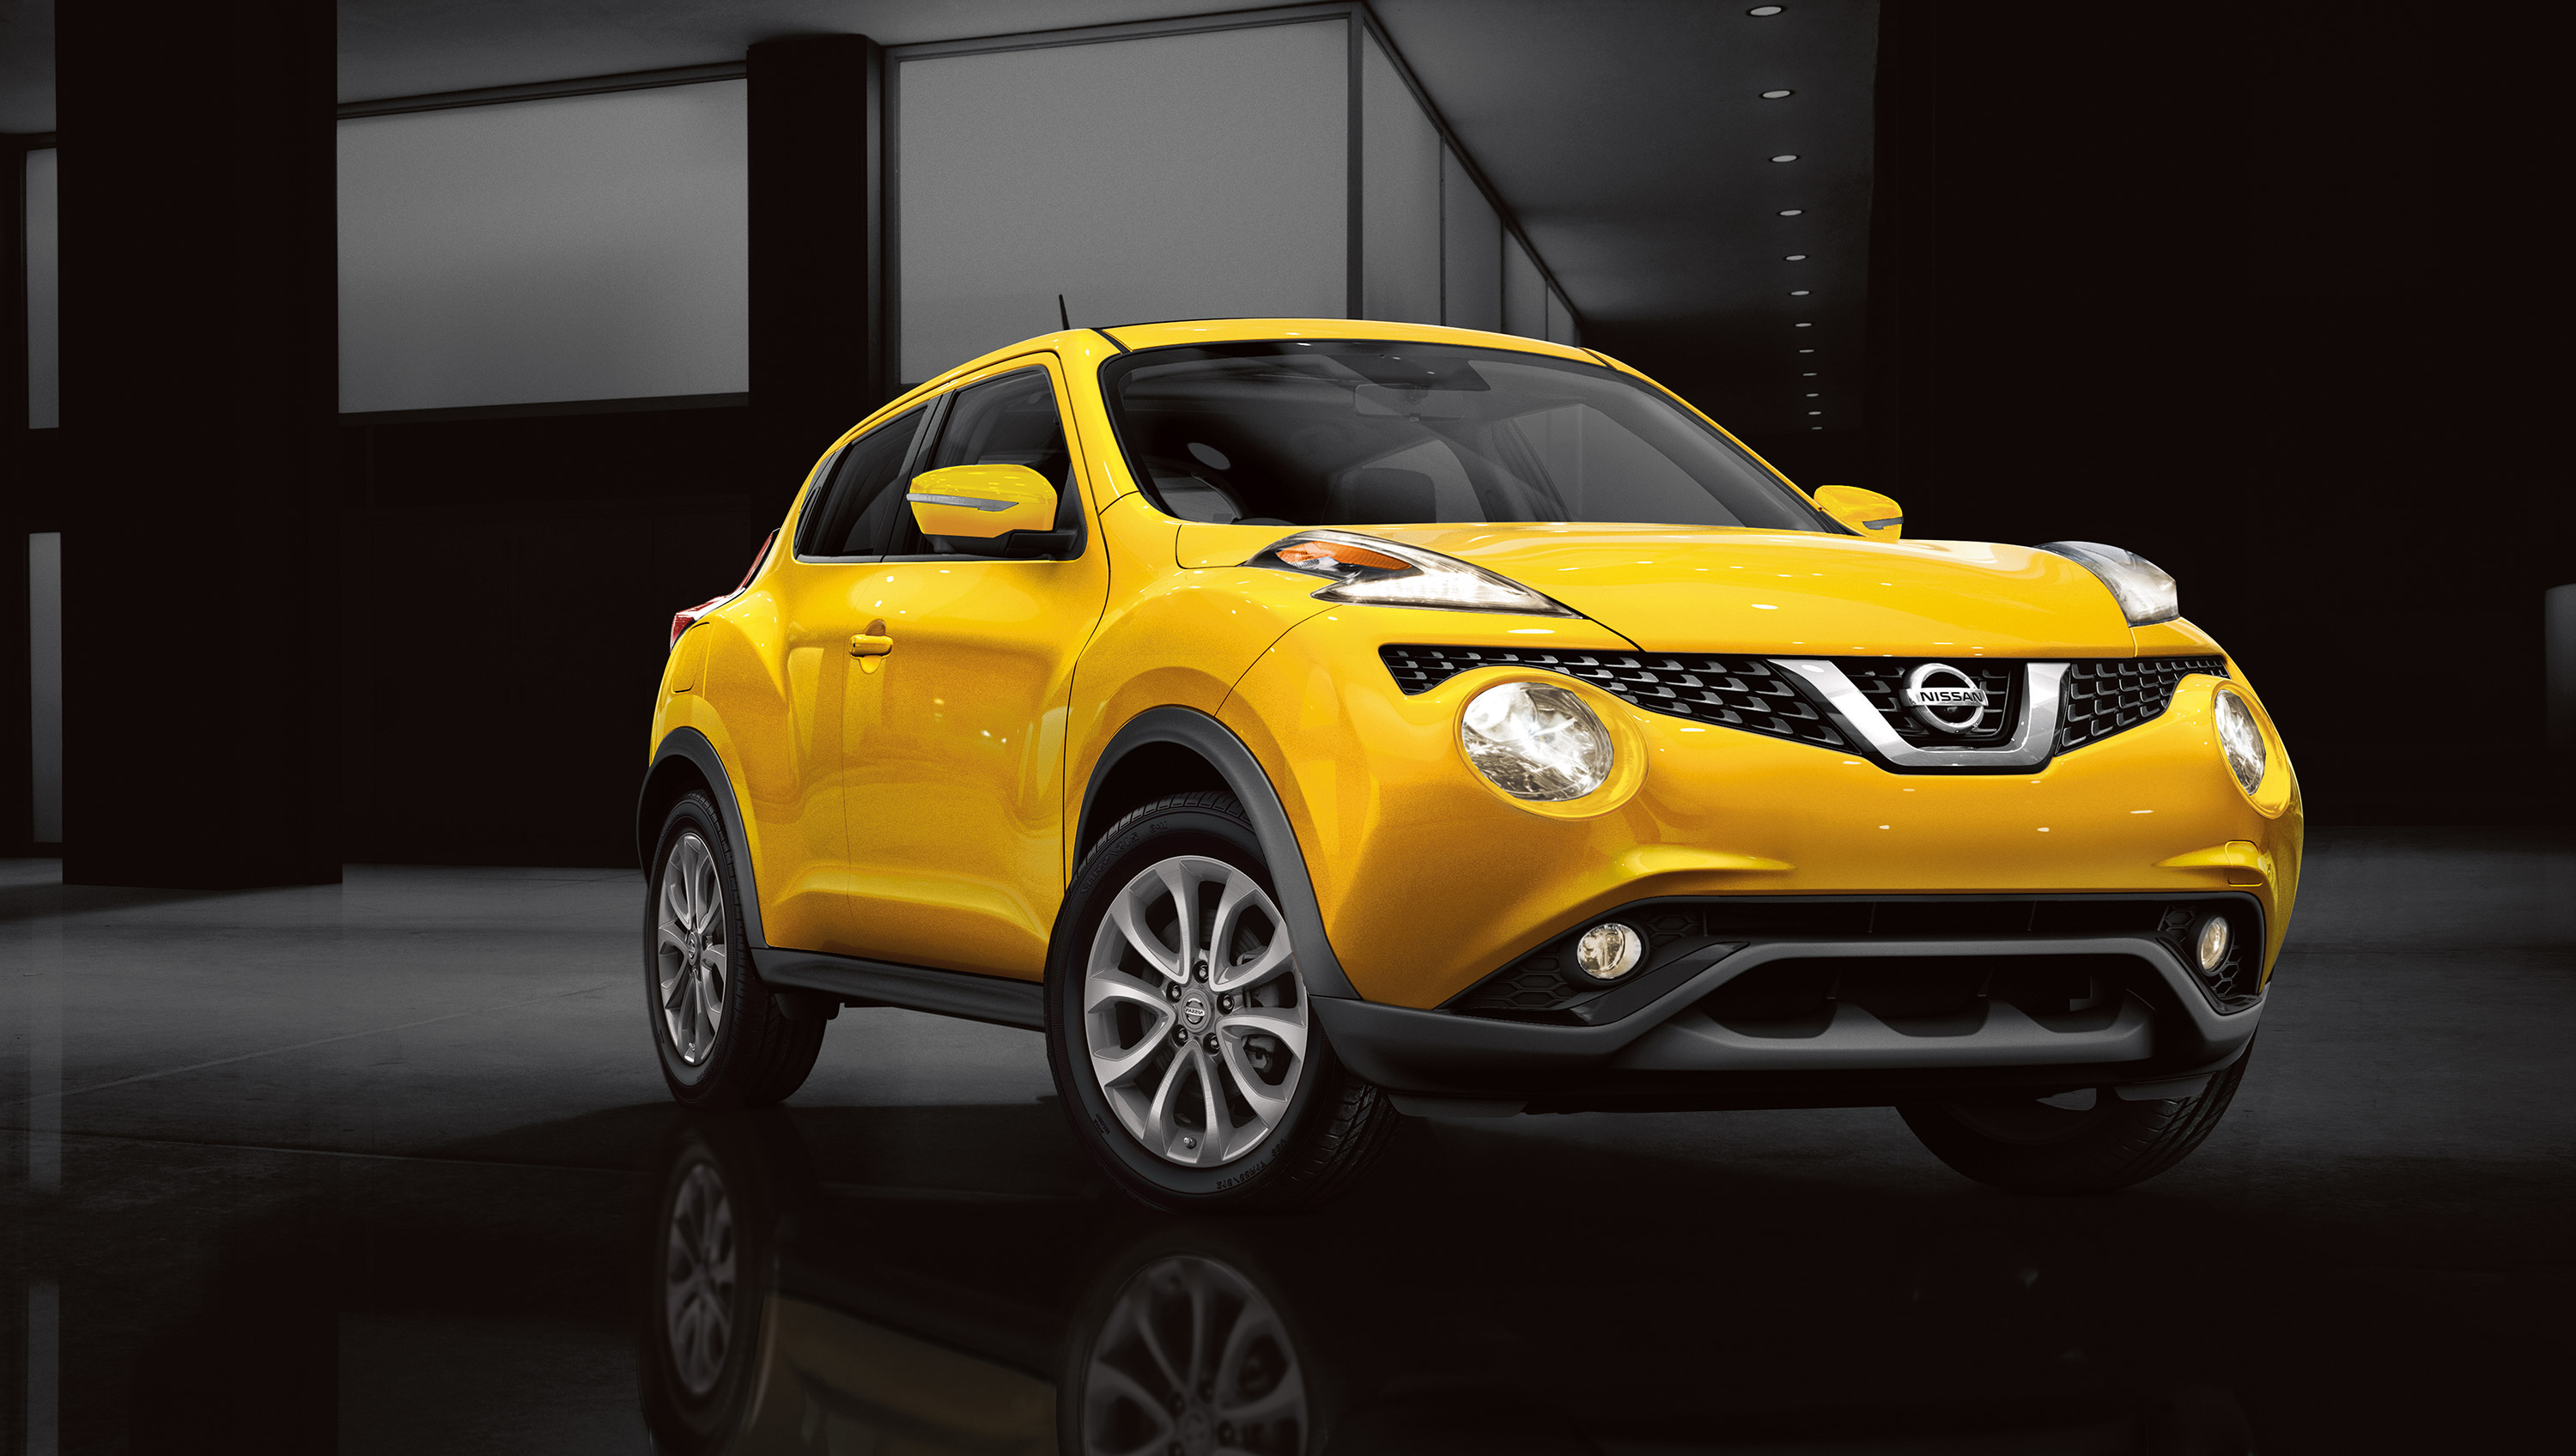 release price offers qashqai carwow news nissan date specs electric